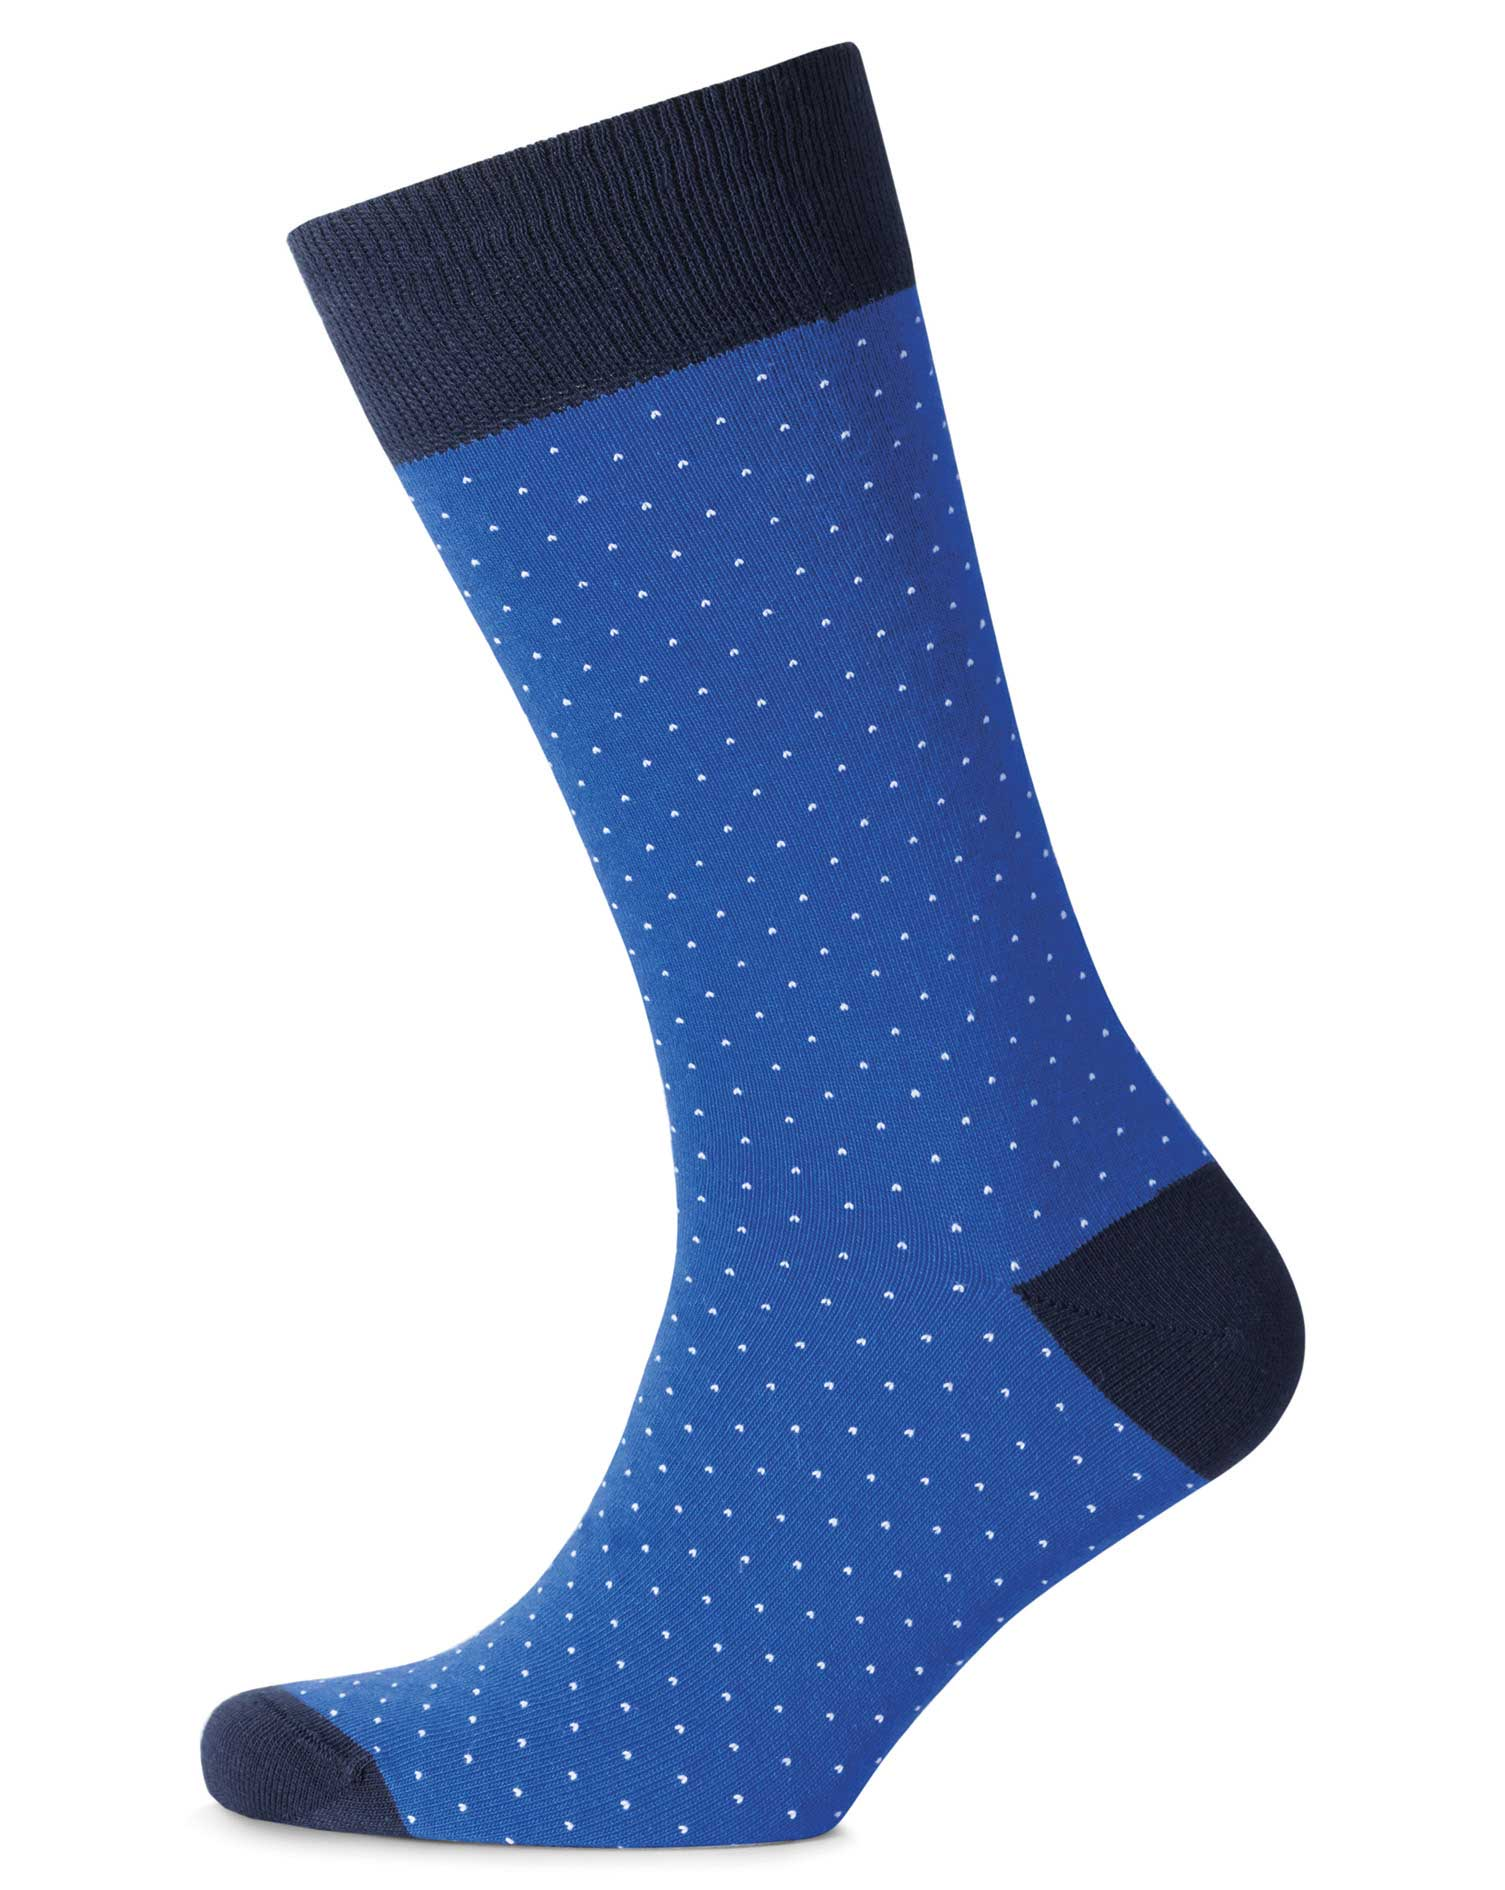 Blue and White Micro Dash Socks Size Large by Charles Tyrwhitt